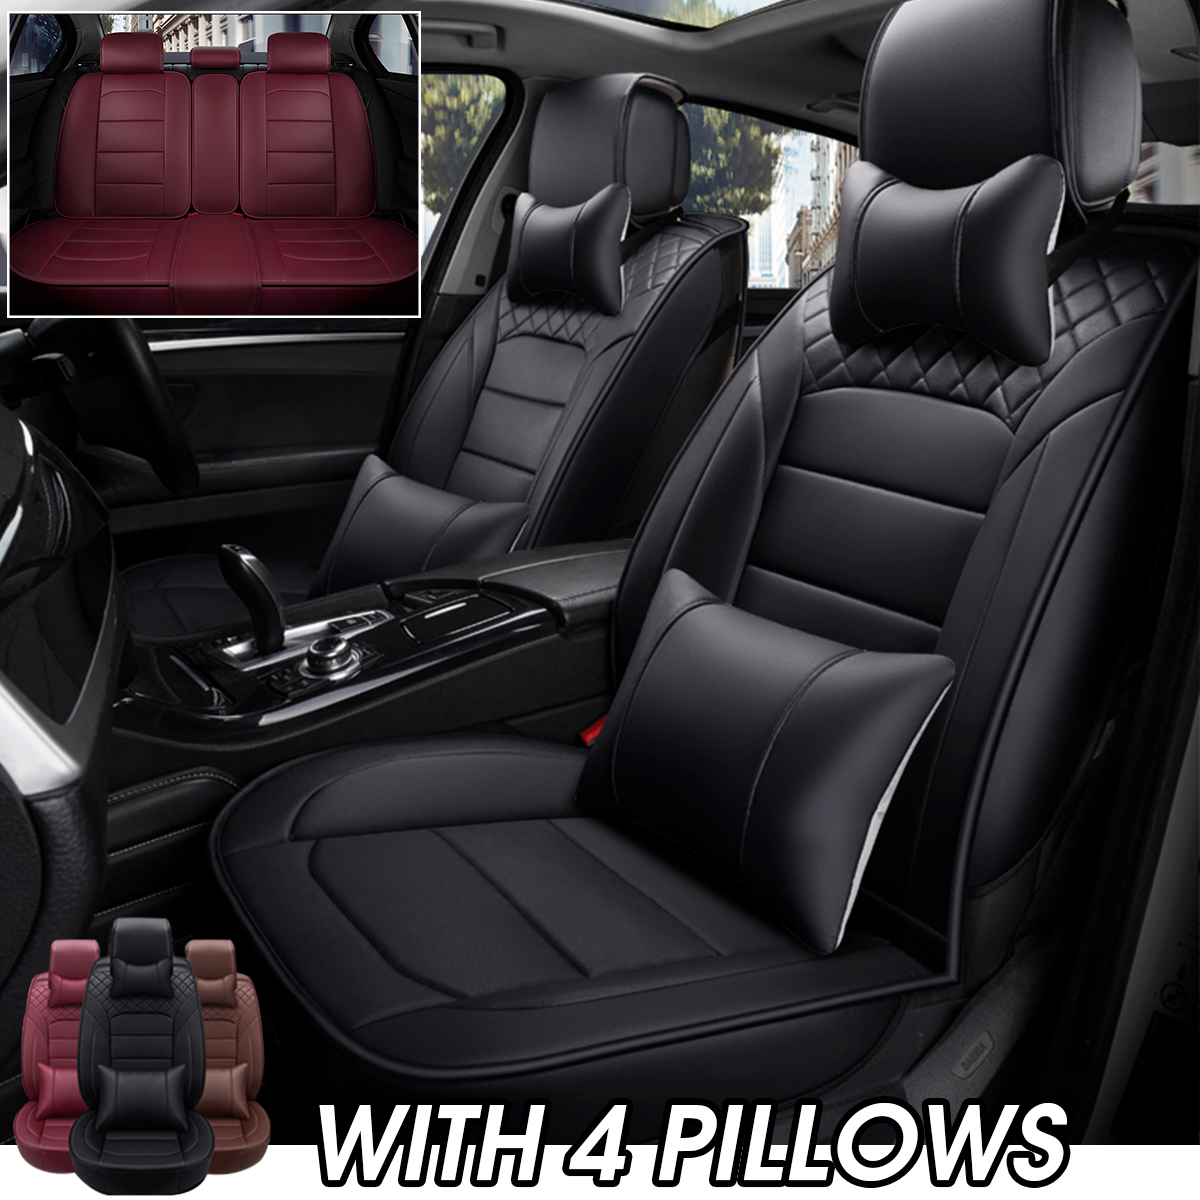 KDD Real Leather car Cushion Luxury seat Cover Four Seasons Universal 360/° Full Surround Fit Model BMW 5 Series 3 Series Audi a4la6lq5 Mercedes C200